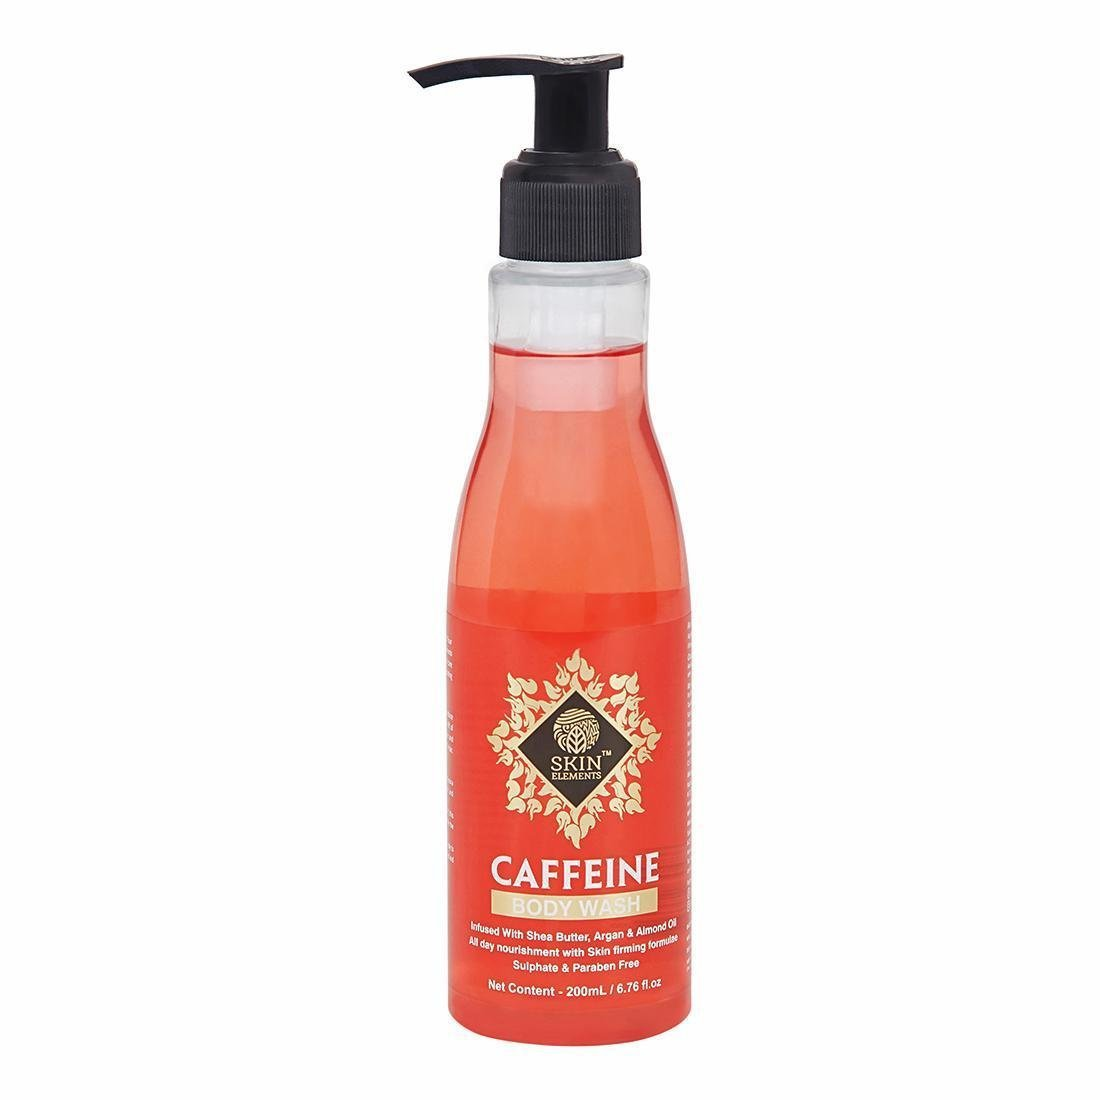 Get Caffeine Body Wash by Skin Elements (200 mL) with Shea Butter, Almond & Argan Oil, Sulphate and